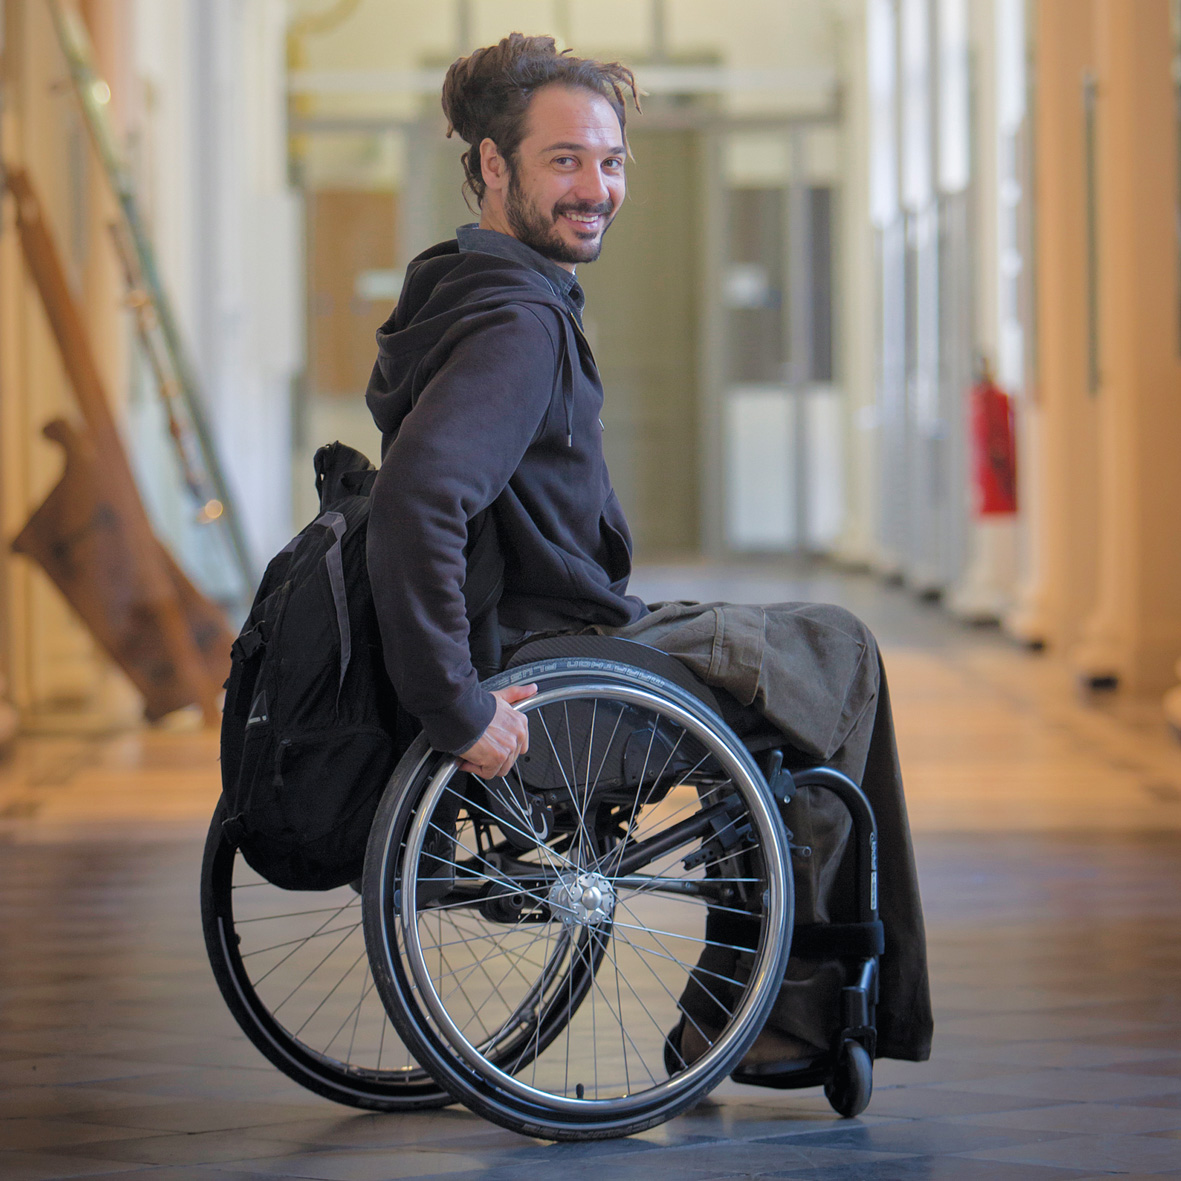 A man sits in a hallway of the TU Graz in a wheelchair. He is smiling at the camera.